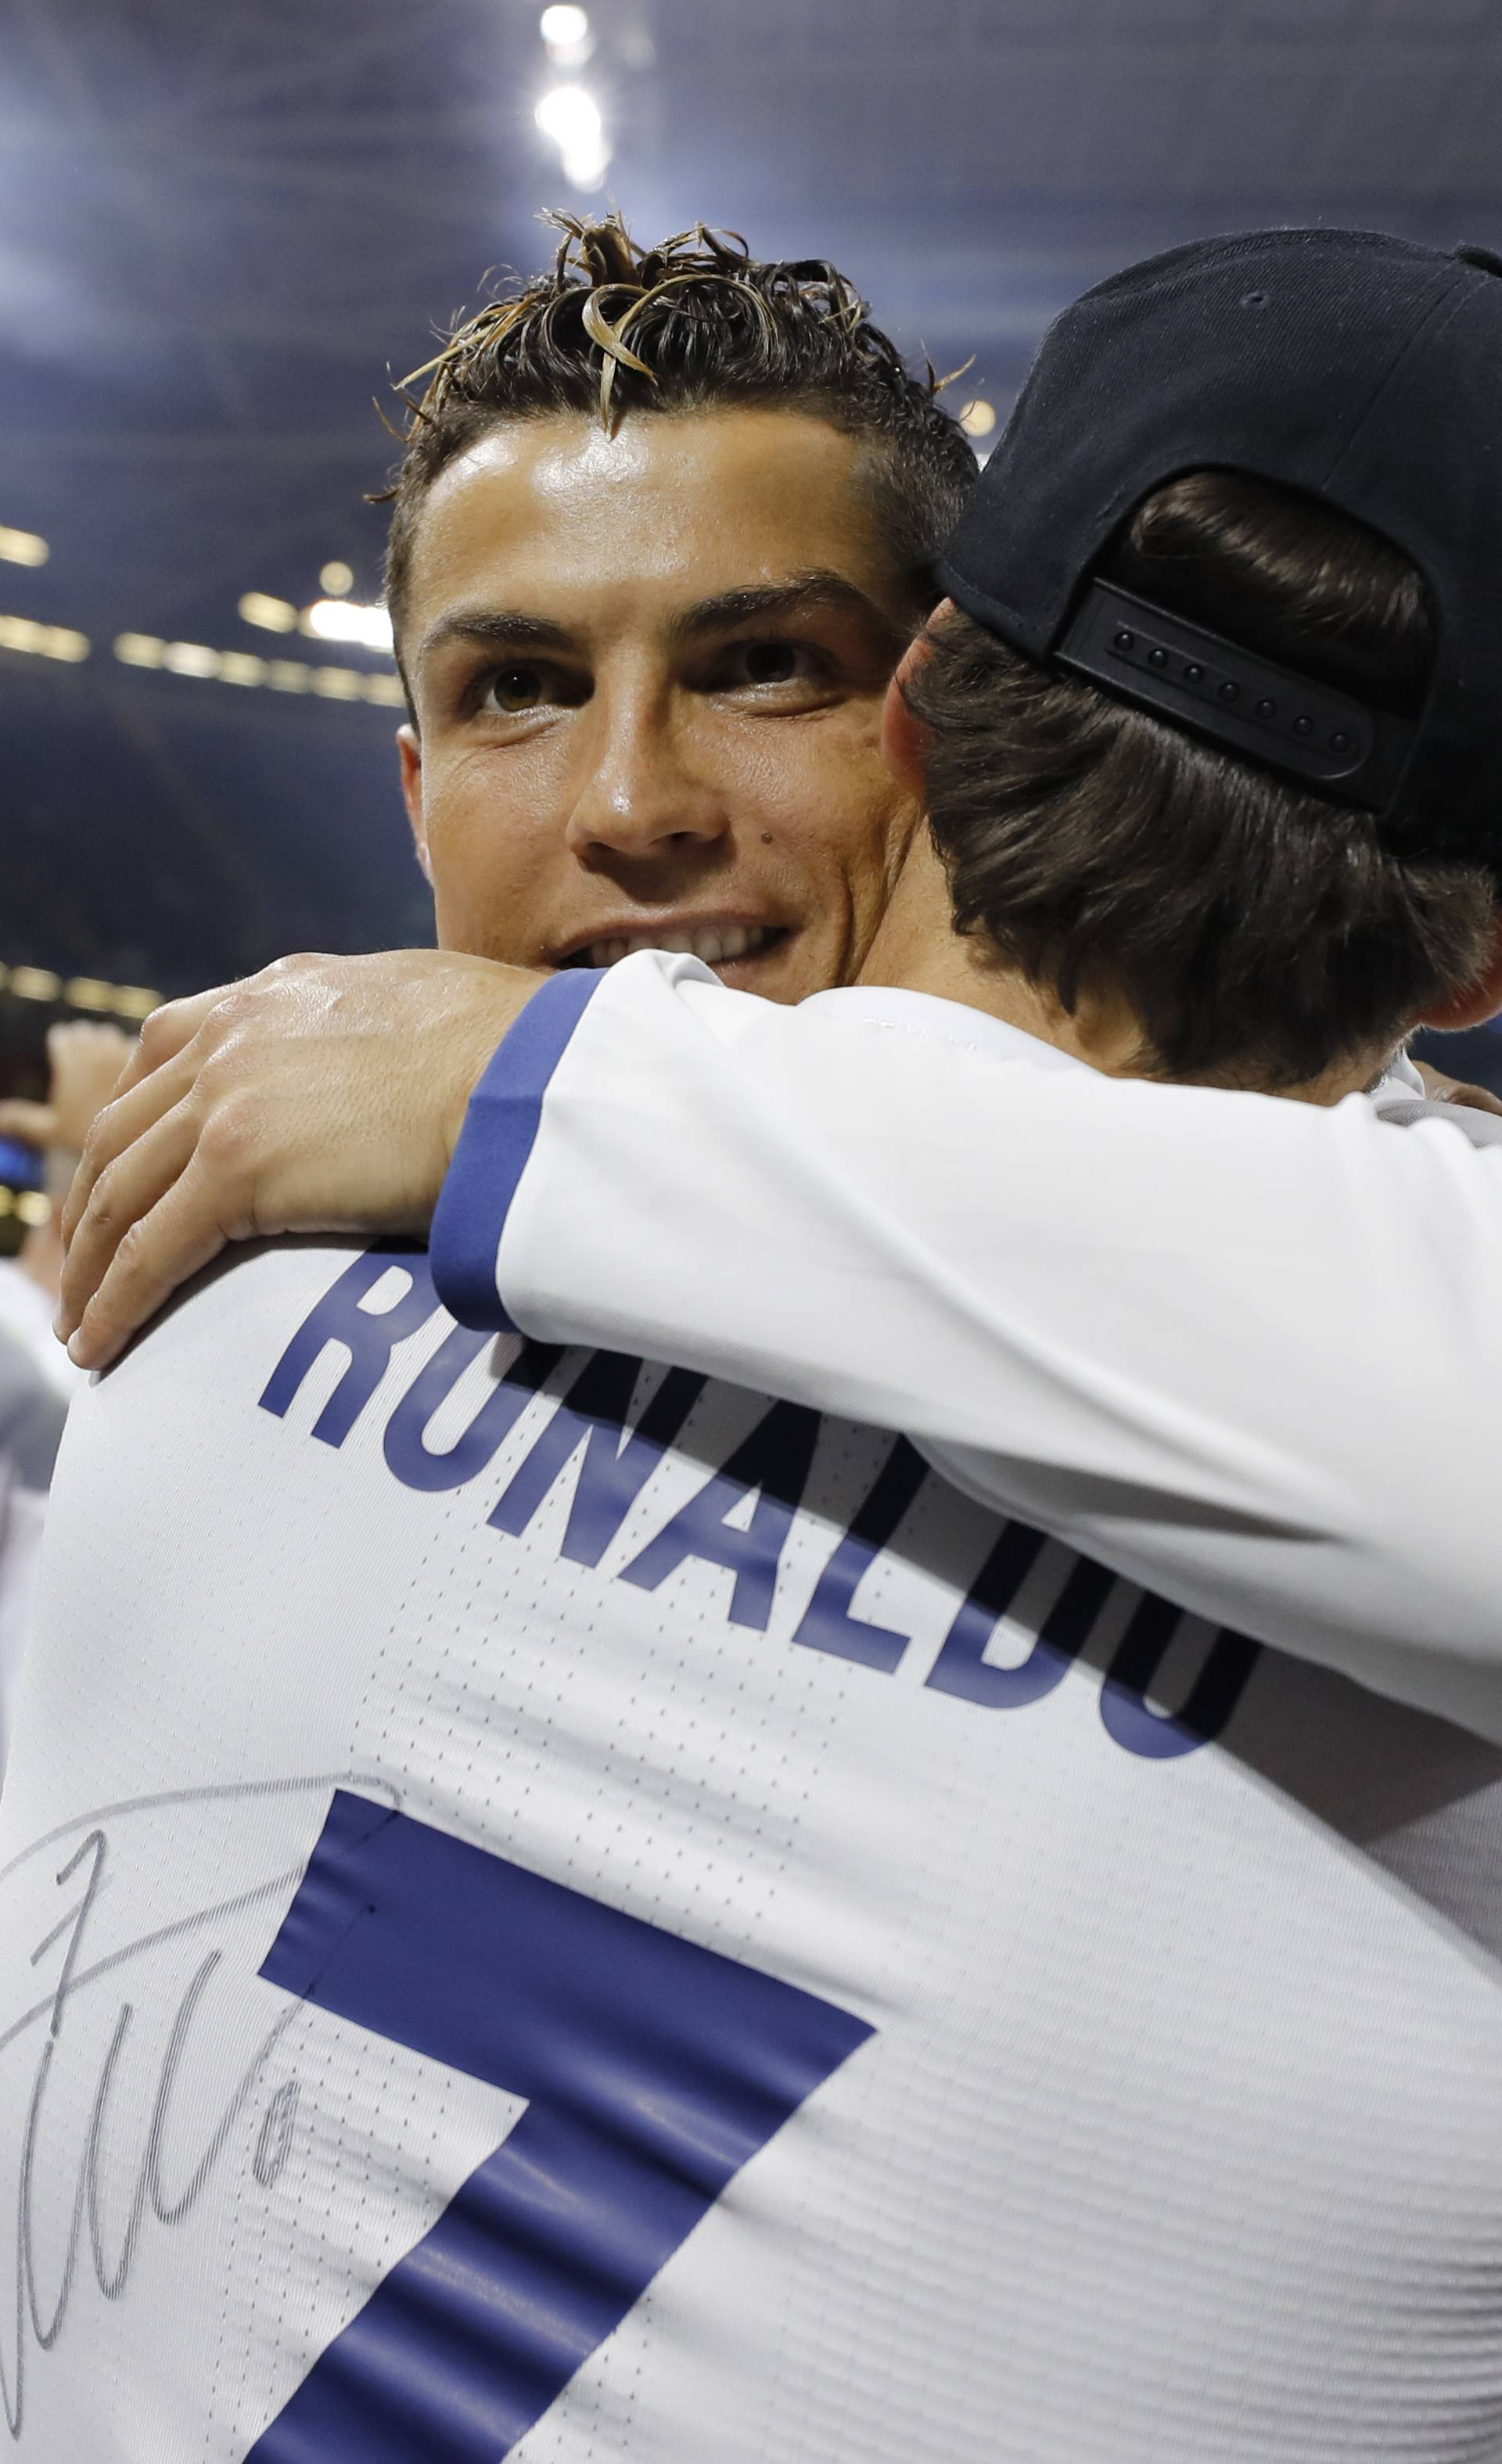 Real Madrid's Cristiano Ronaldo celebrates winning the UEFA Champions League Final with family